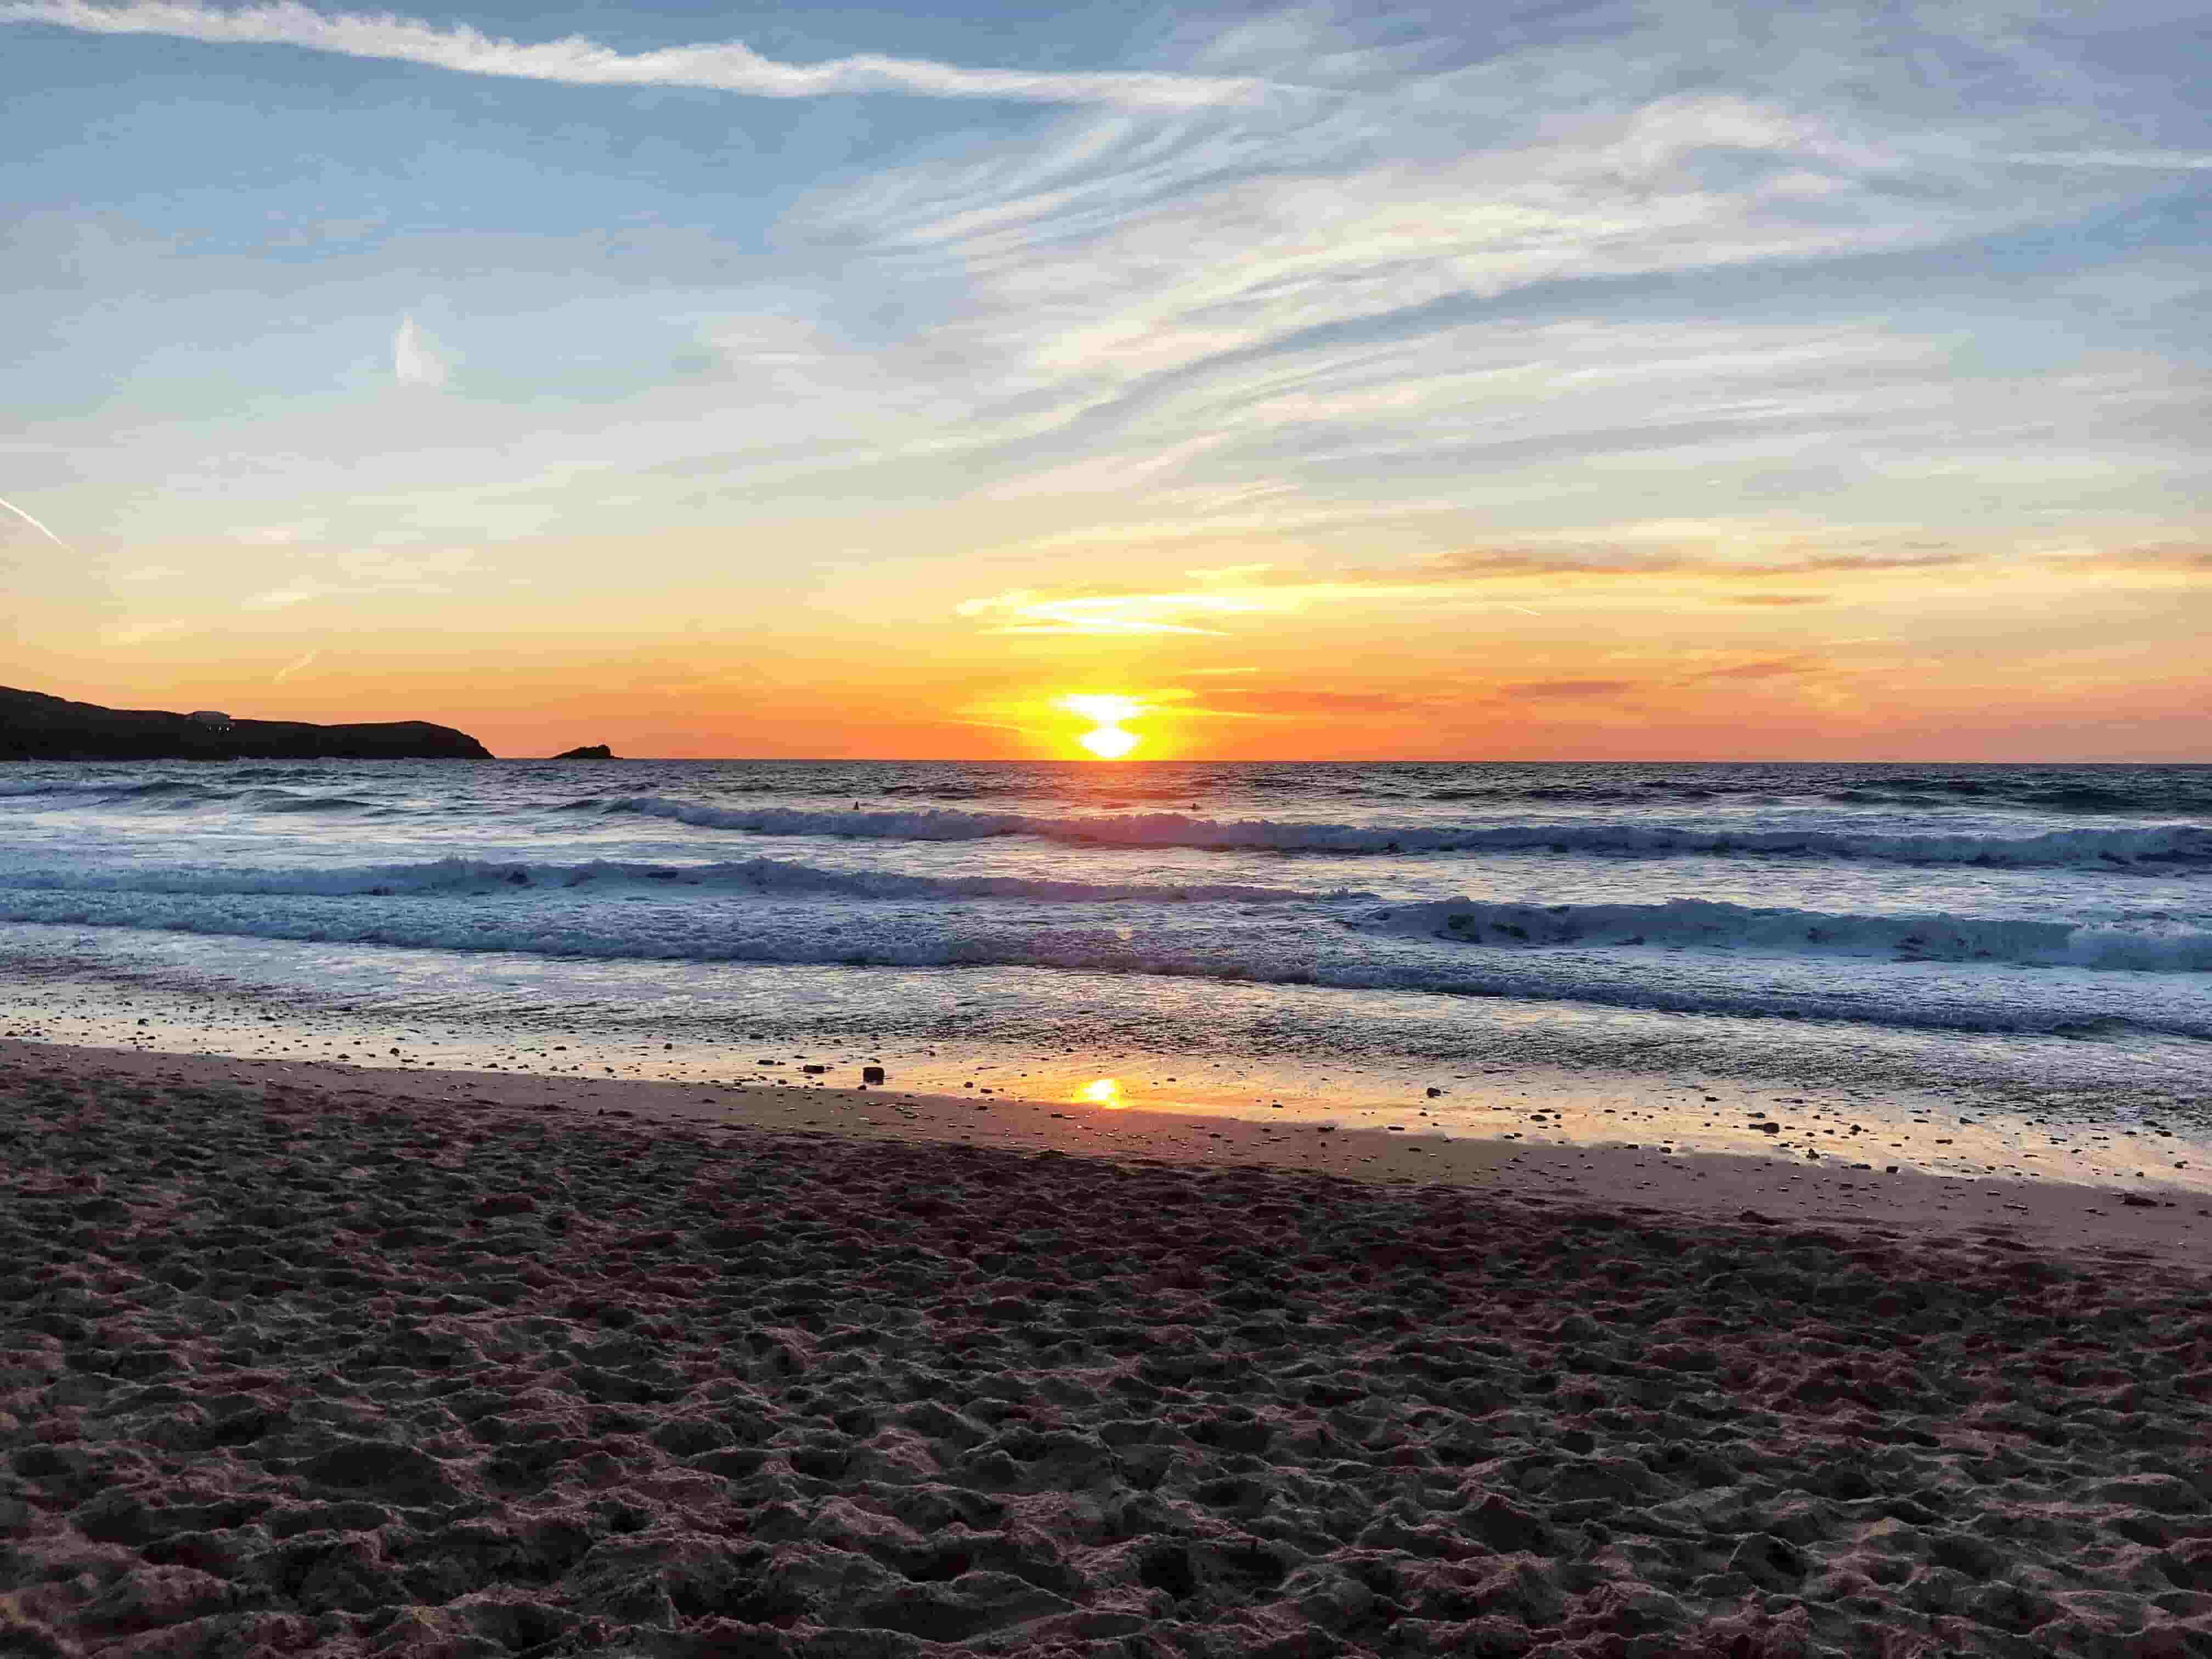 Sunset at Fistral